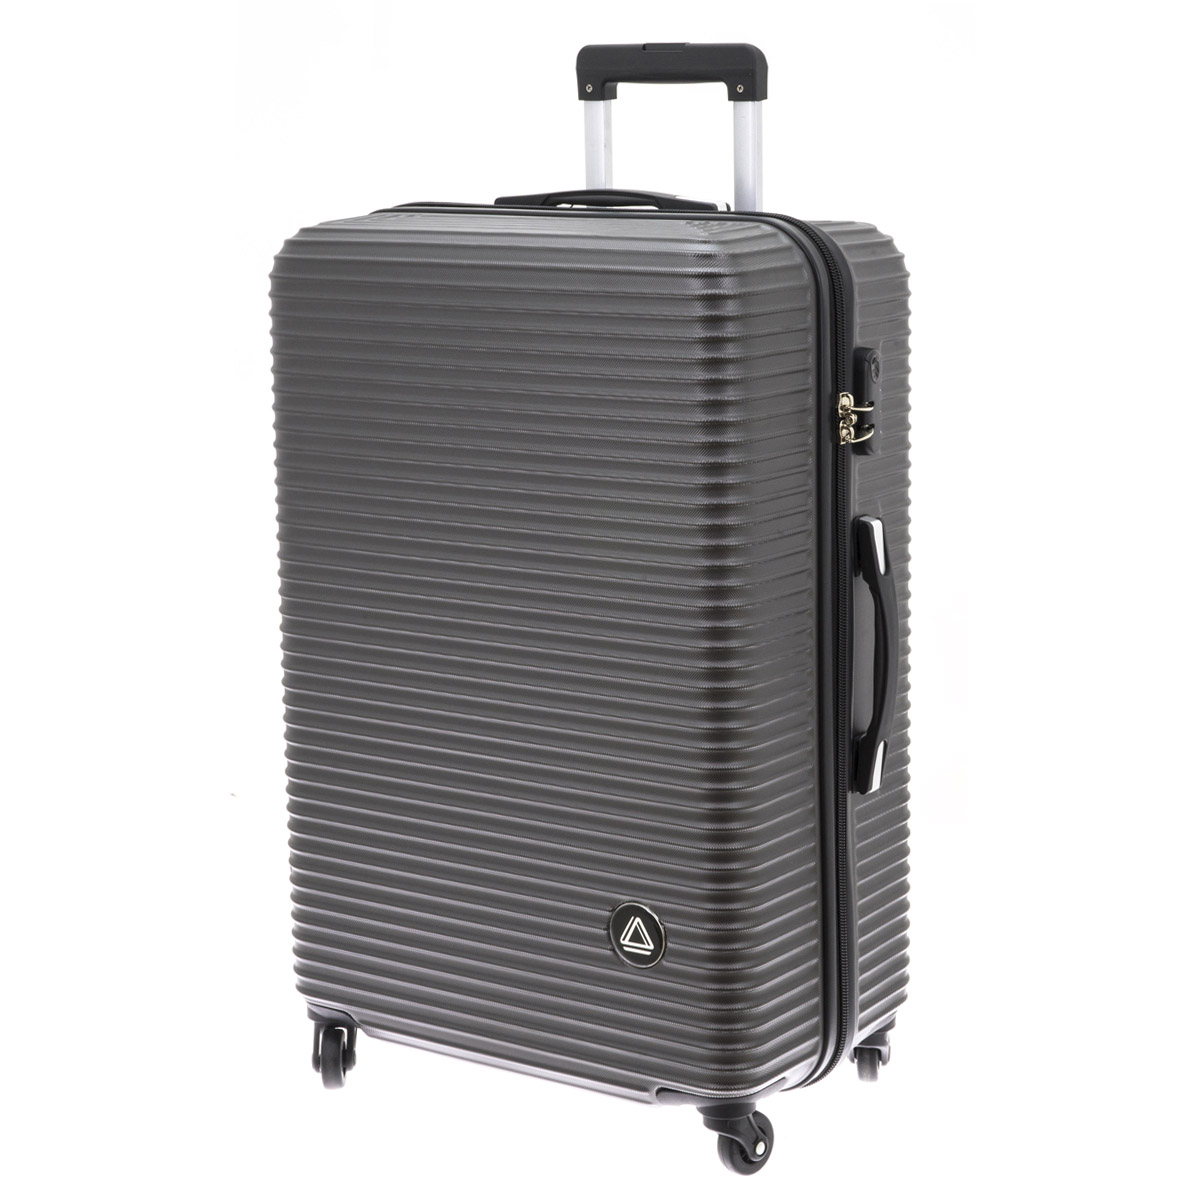 Valise trolley coque ABS \'Davidt\'s\' gris anthracite - 75x49x29 cm - [Q9934]